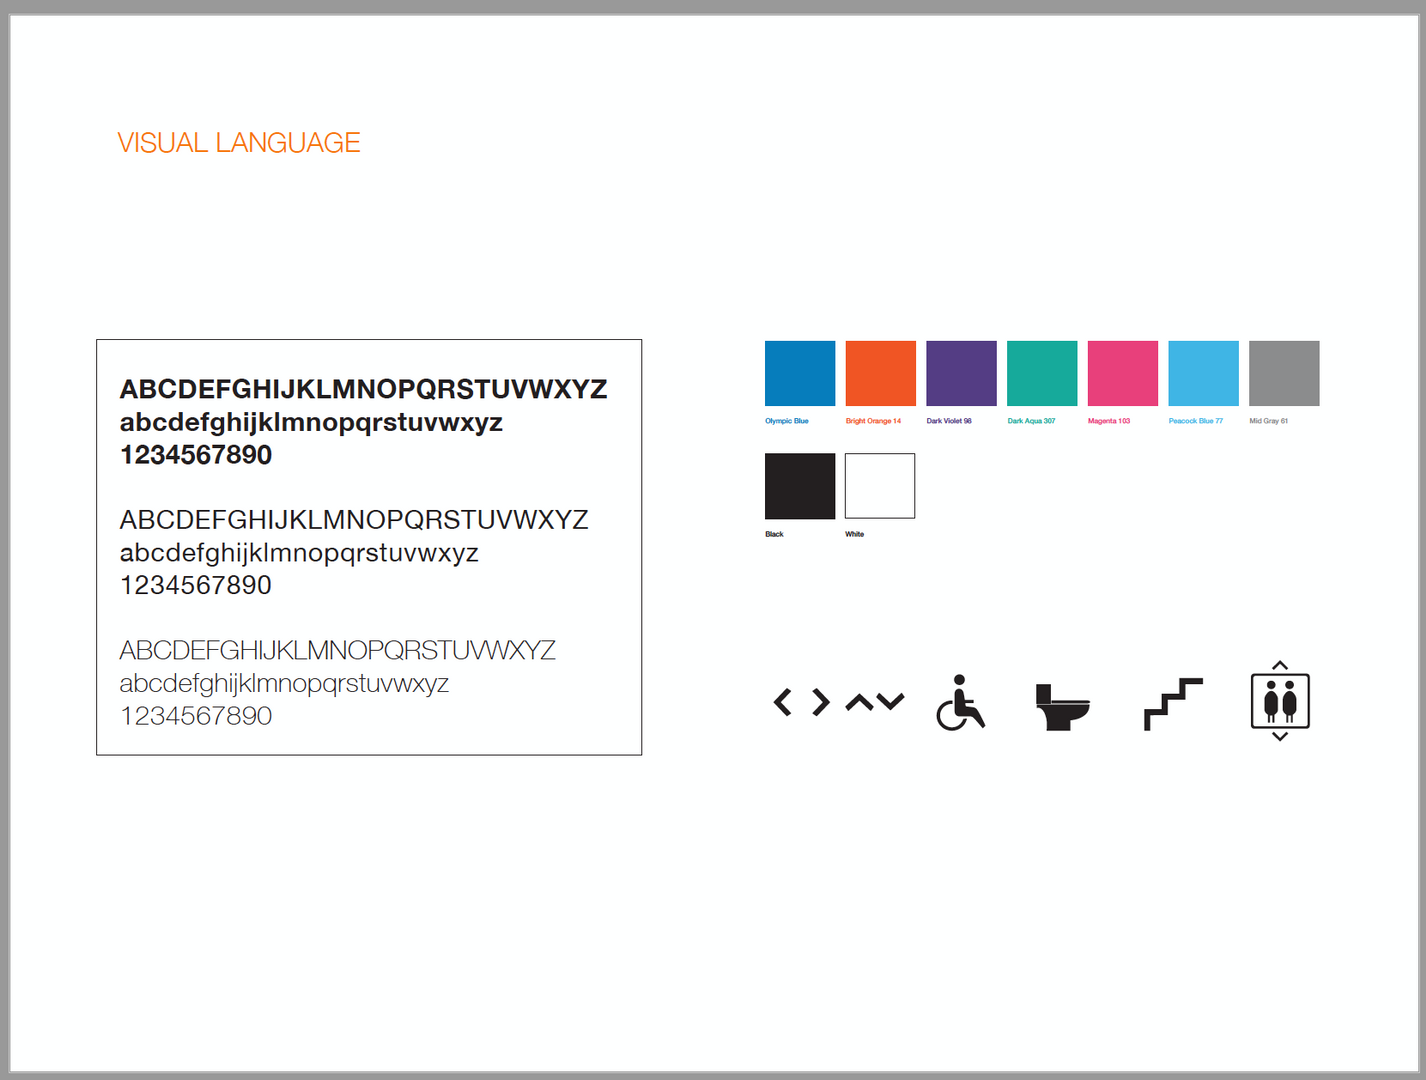 GLIDE-SIGNAGE-PROCESS-5.png